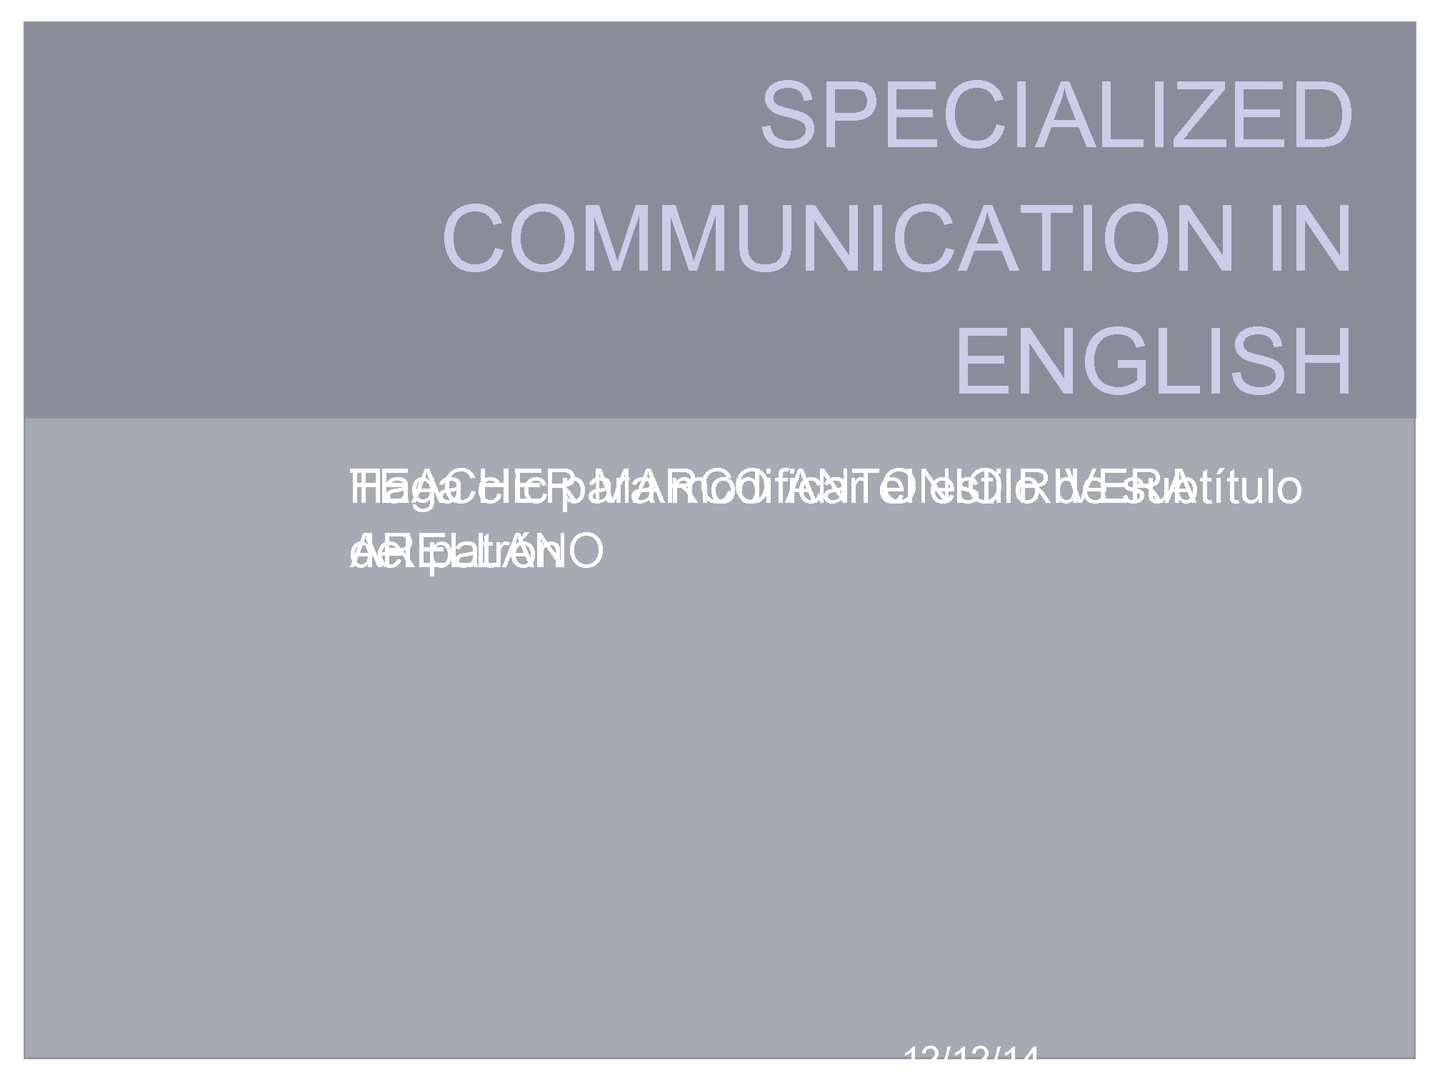 Calameo Specialized Communication In English 3